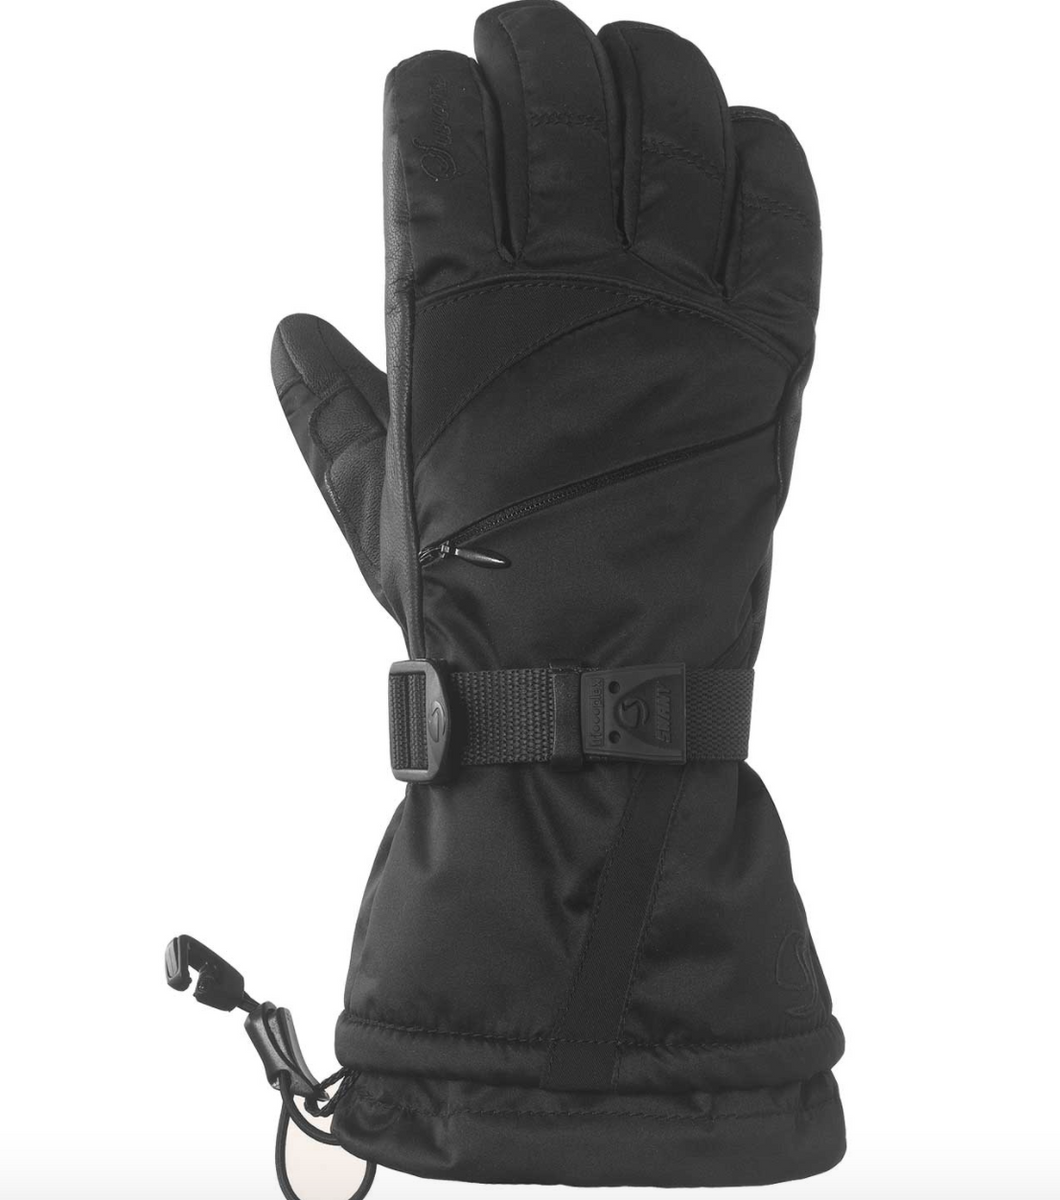 W's X-THERM GLOVE (white & black)